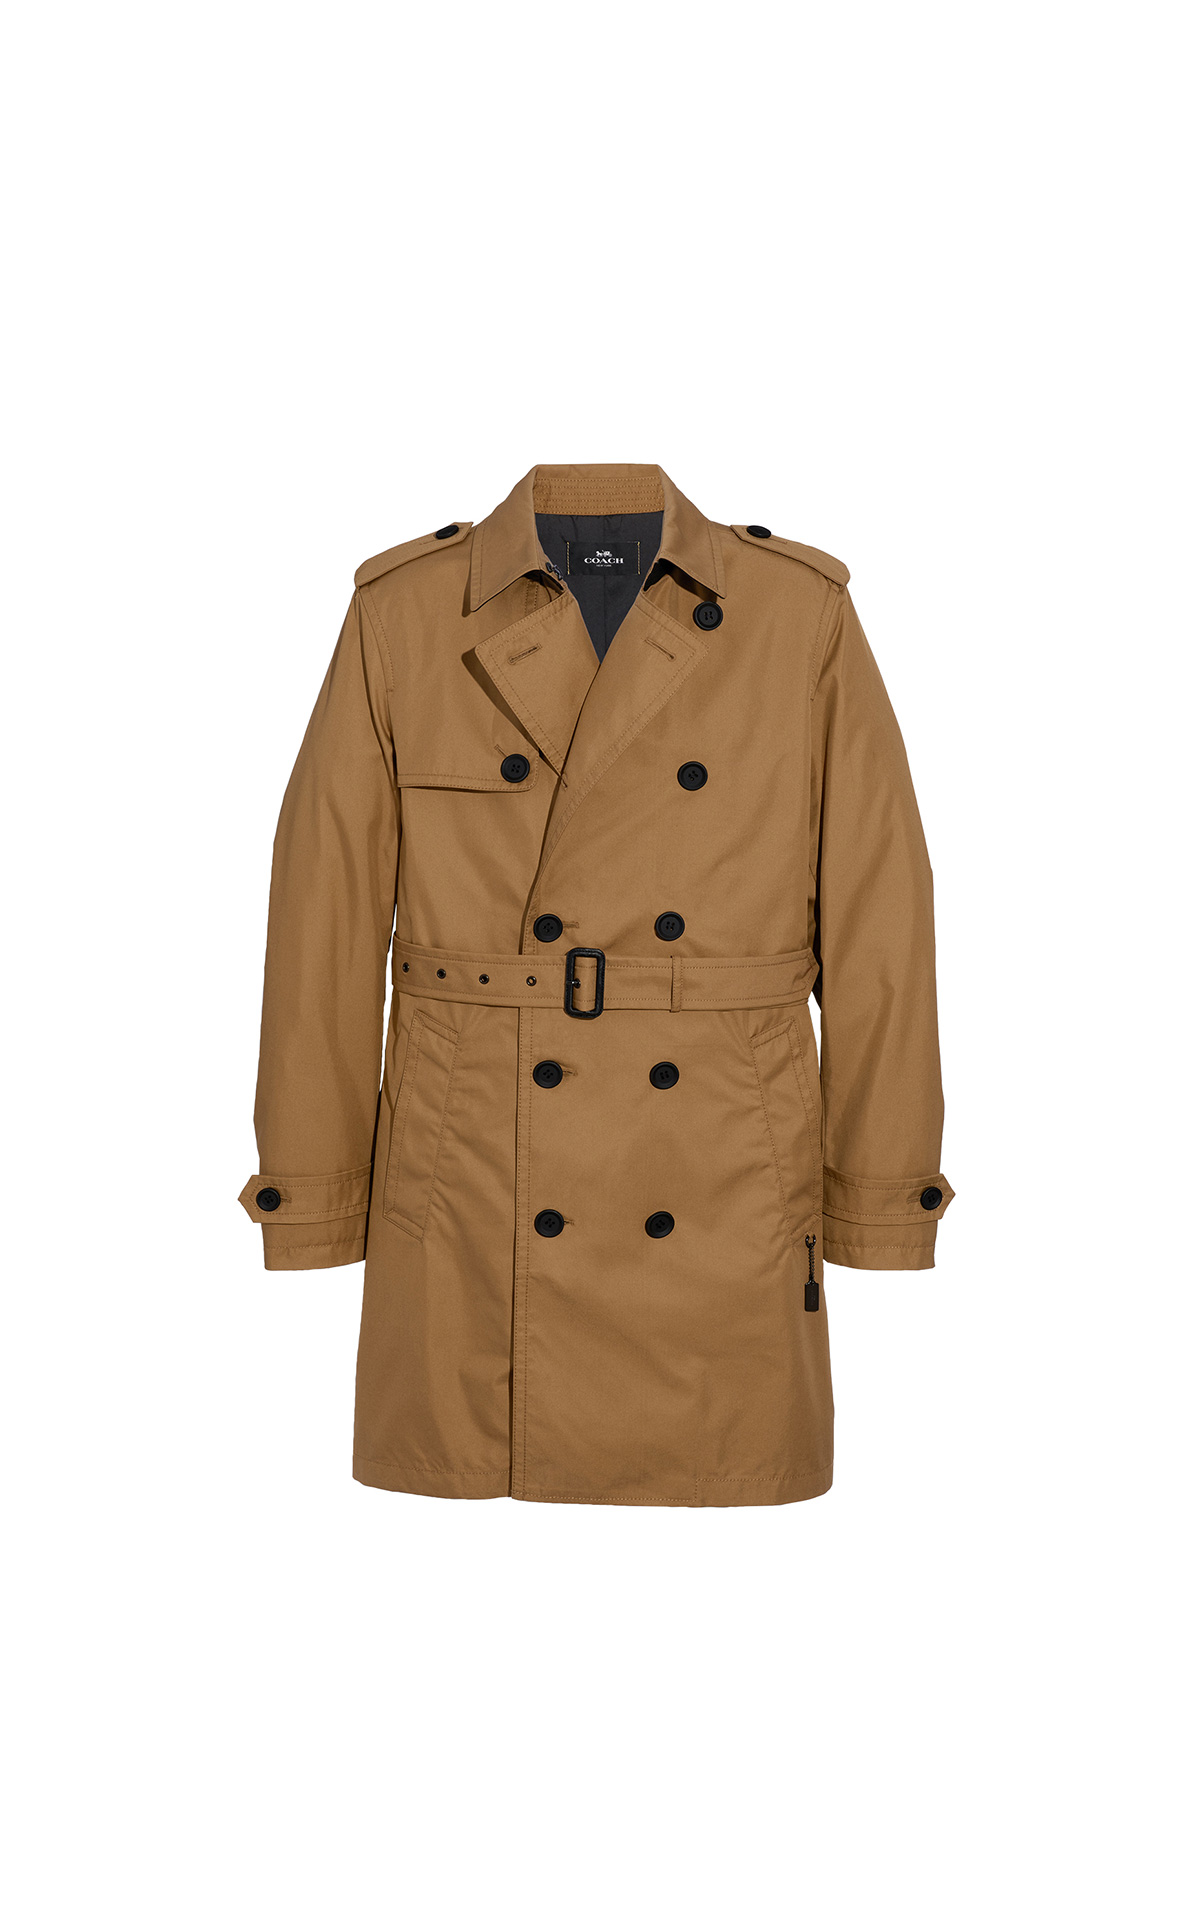 Coach Men's Trench Coat at The Bicester Village Shopping Collection